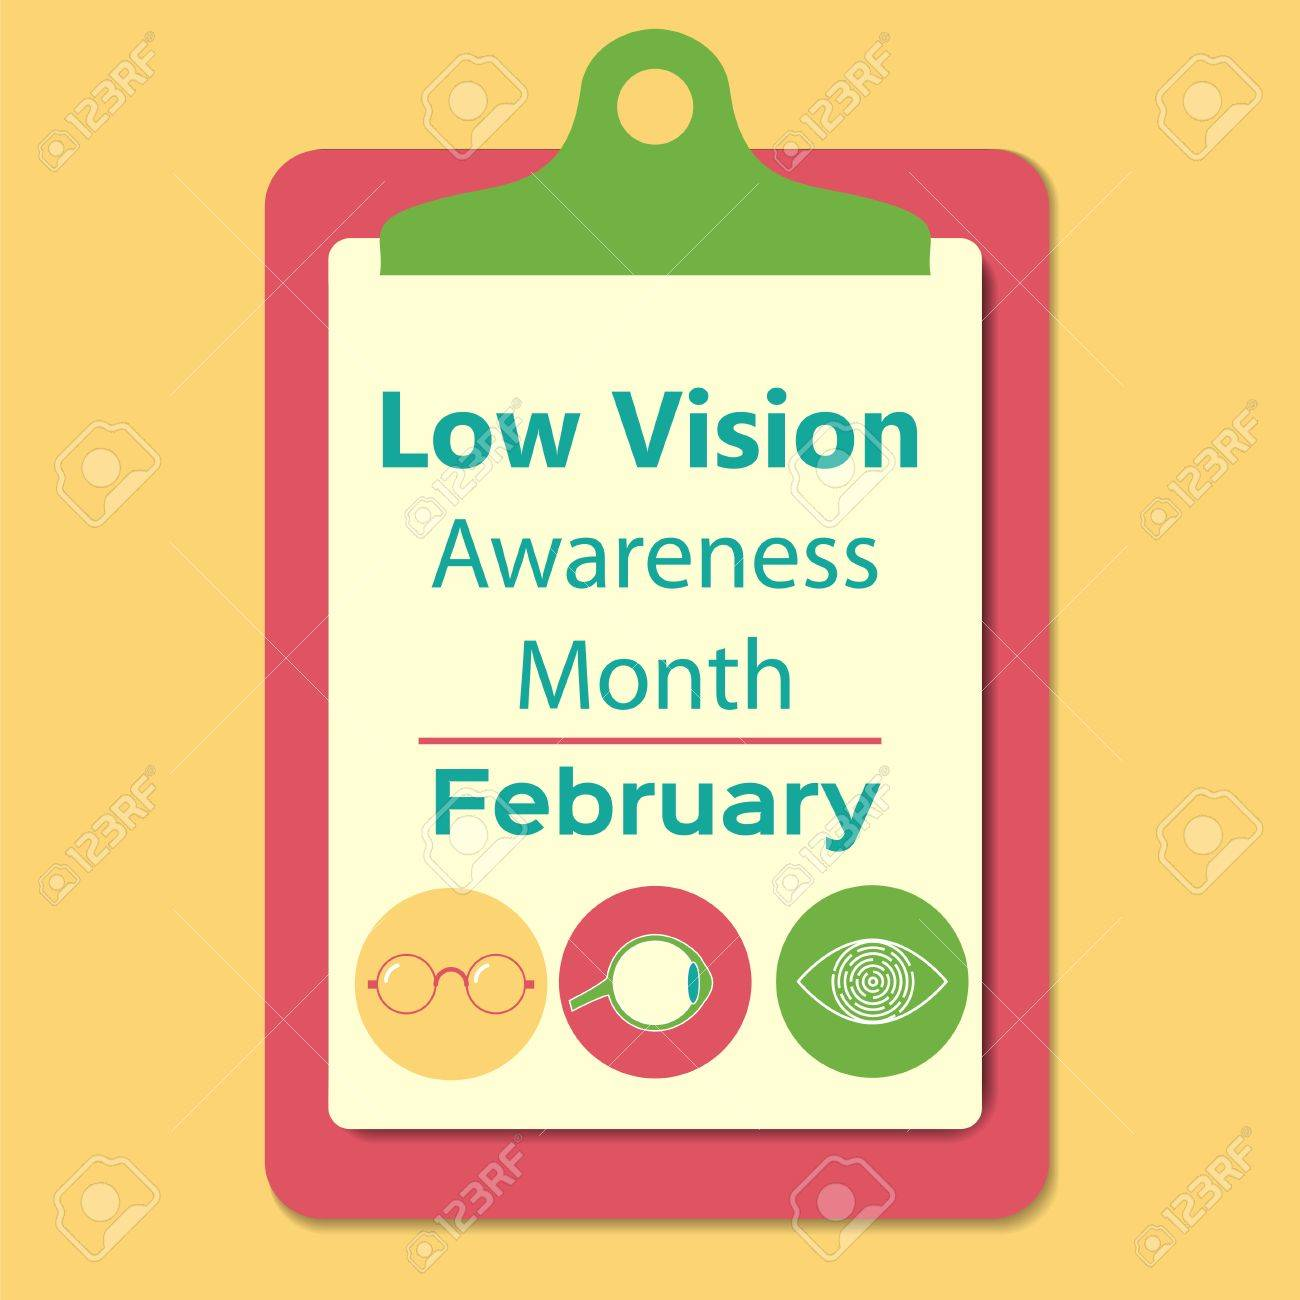 Low vision awareness month sign  Stock vector illustration for